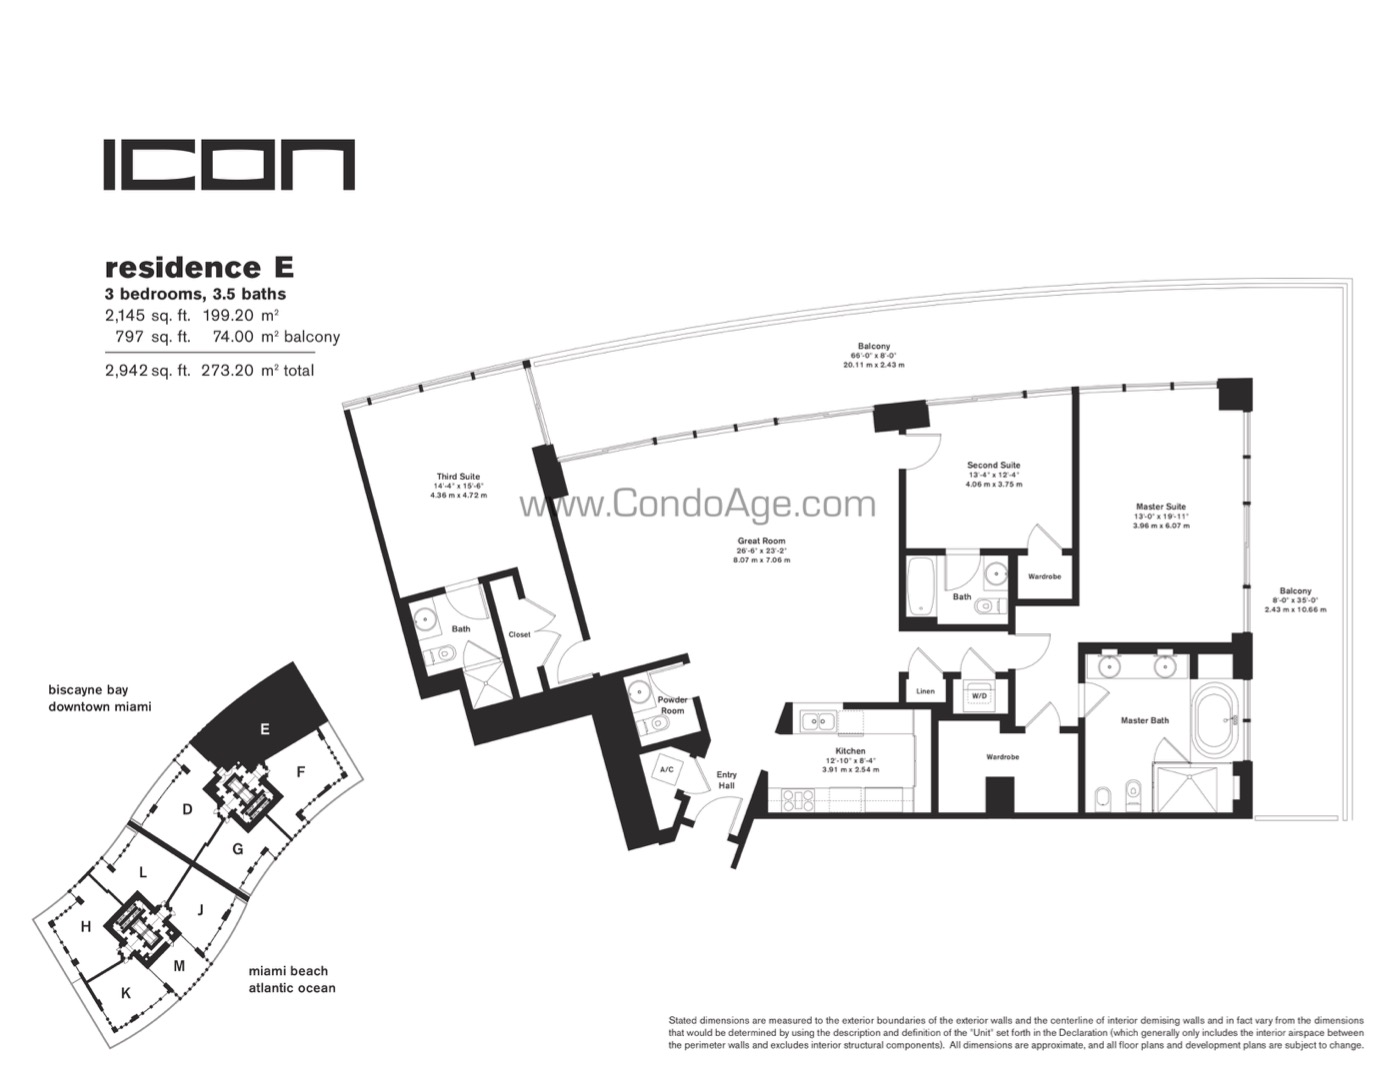 E floor plan image